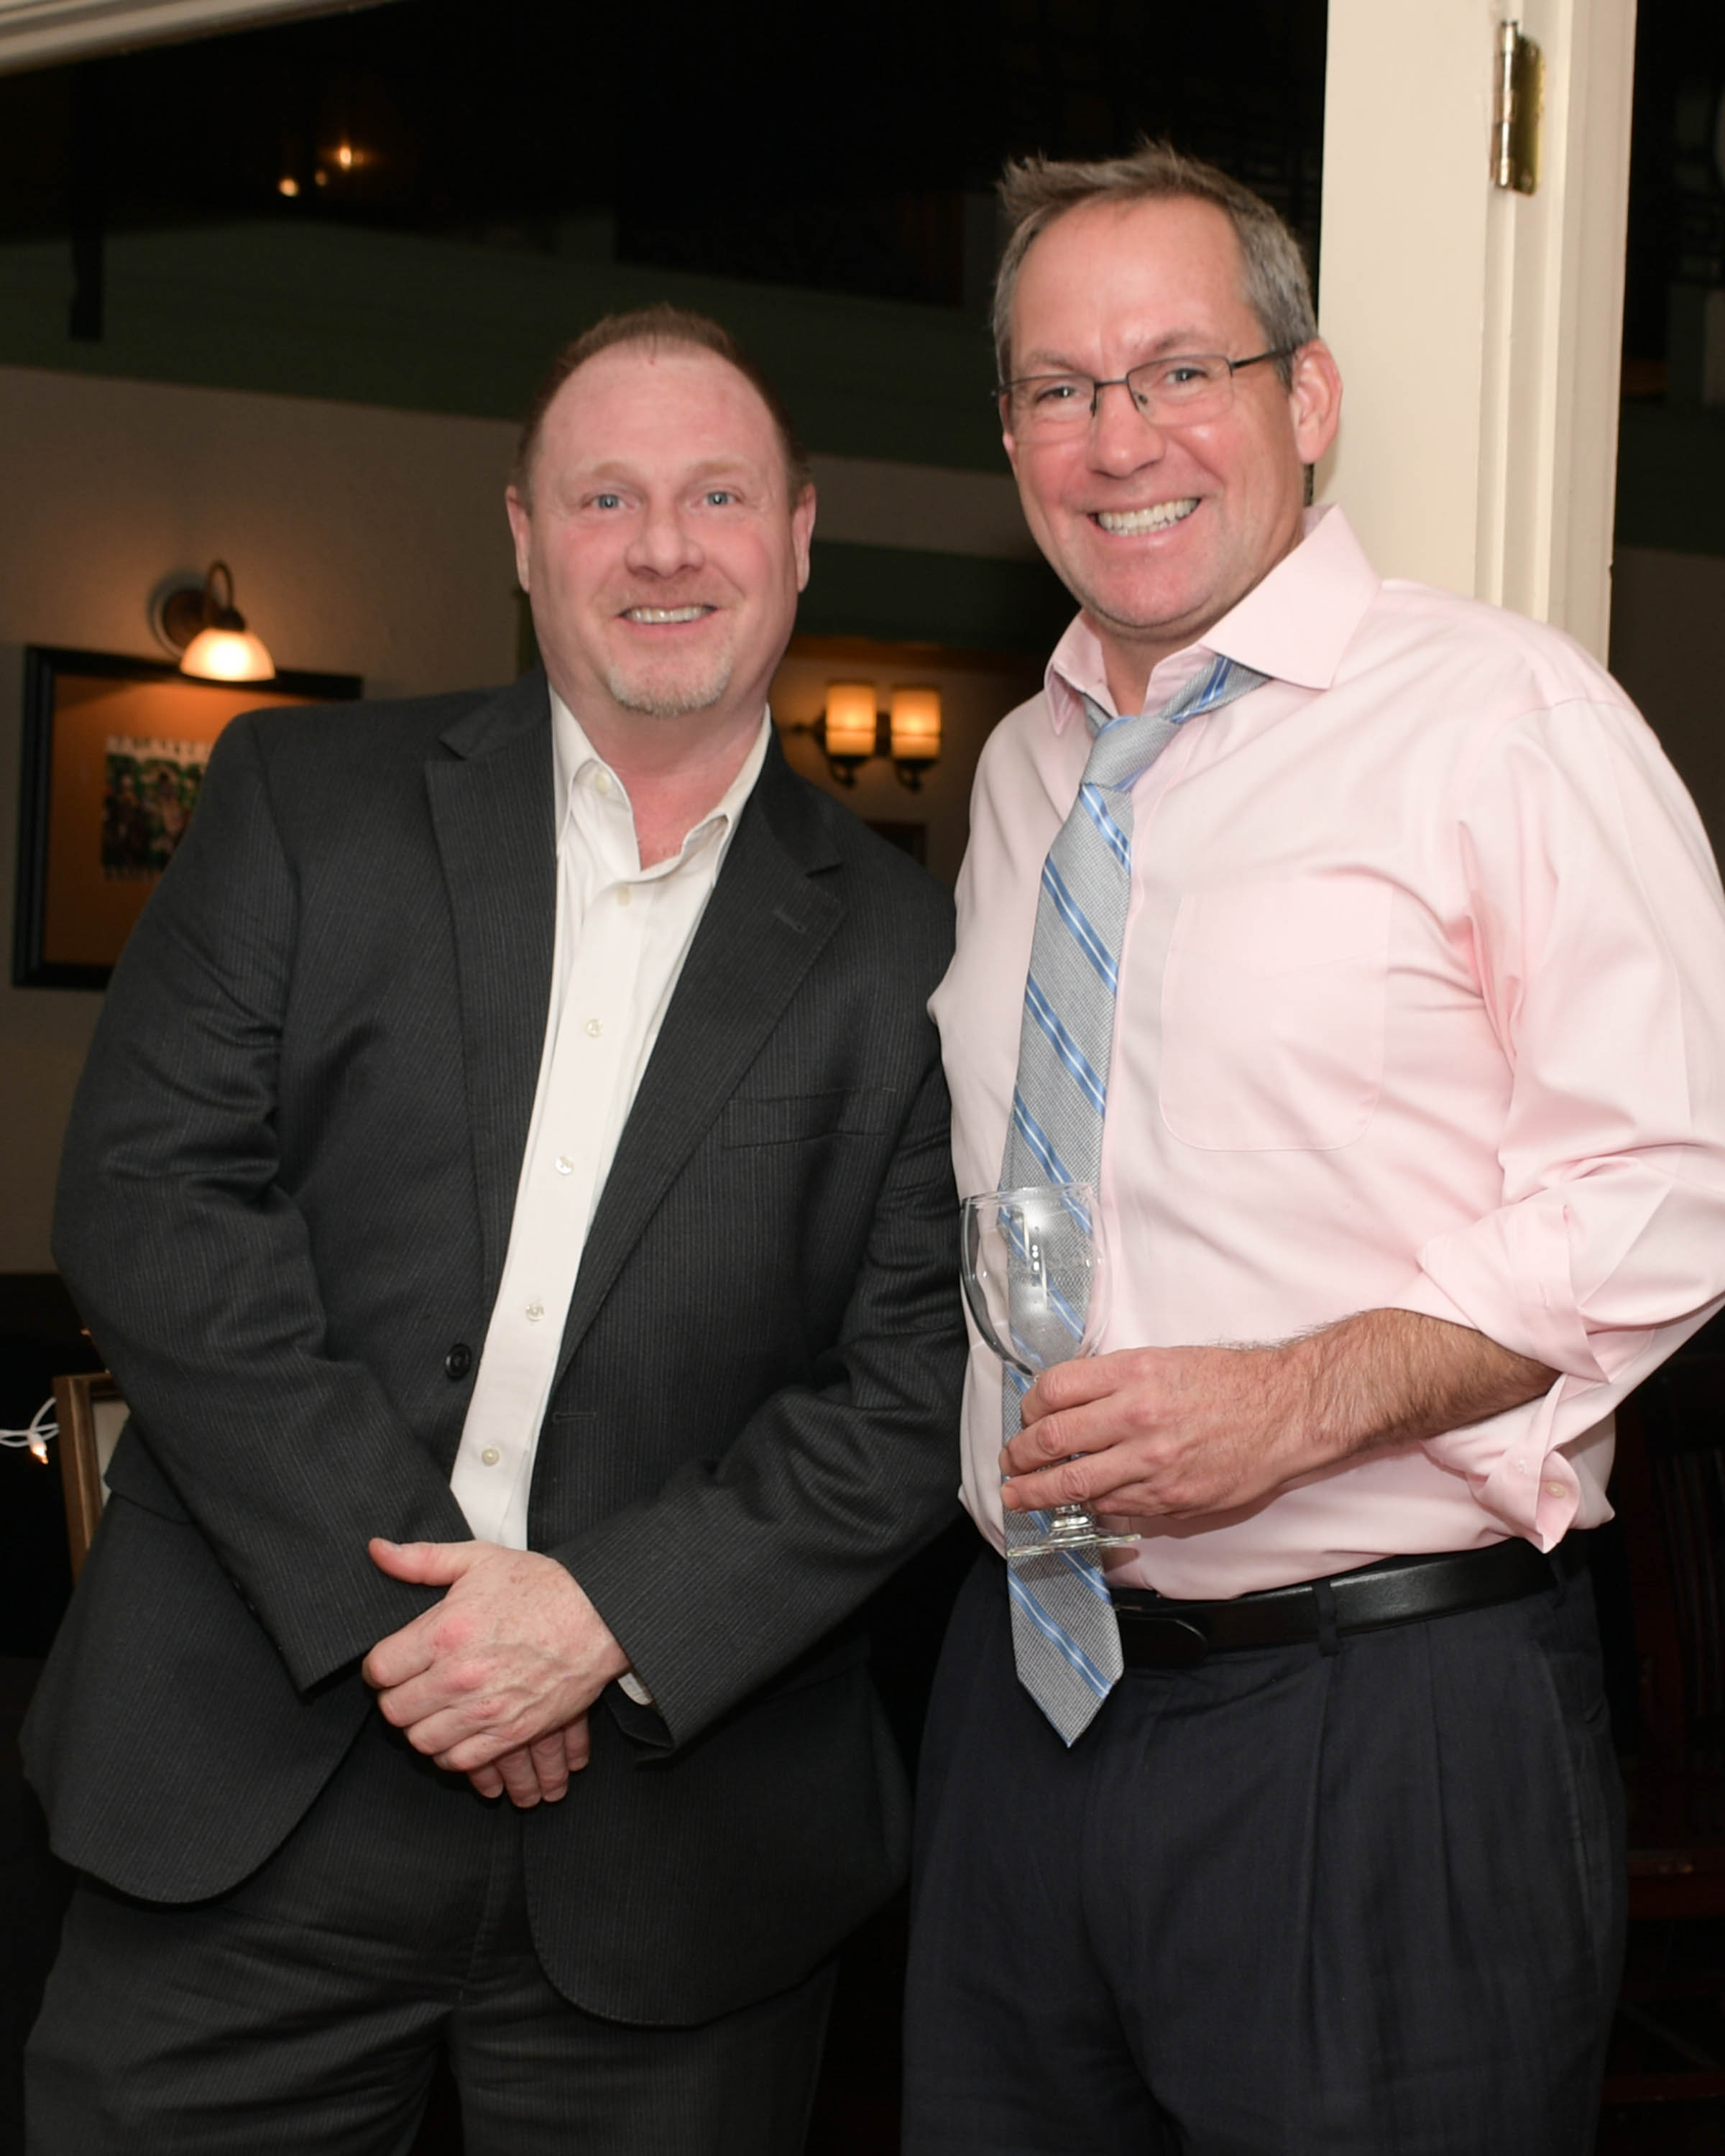 Vin Le Soir to benefit AIM Services, Inc. two men at event